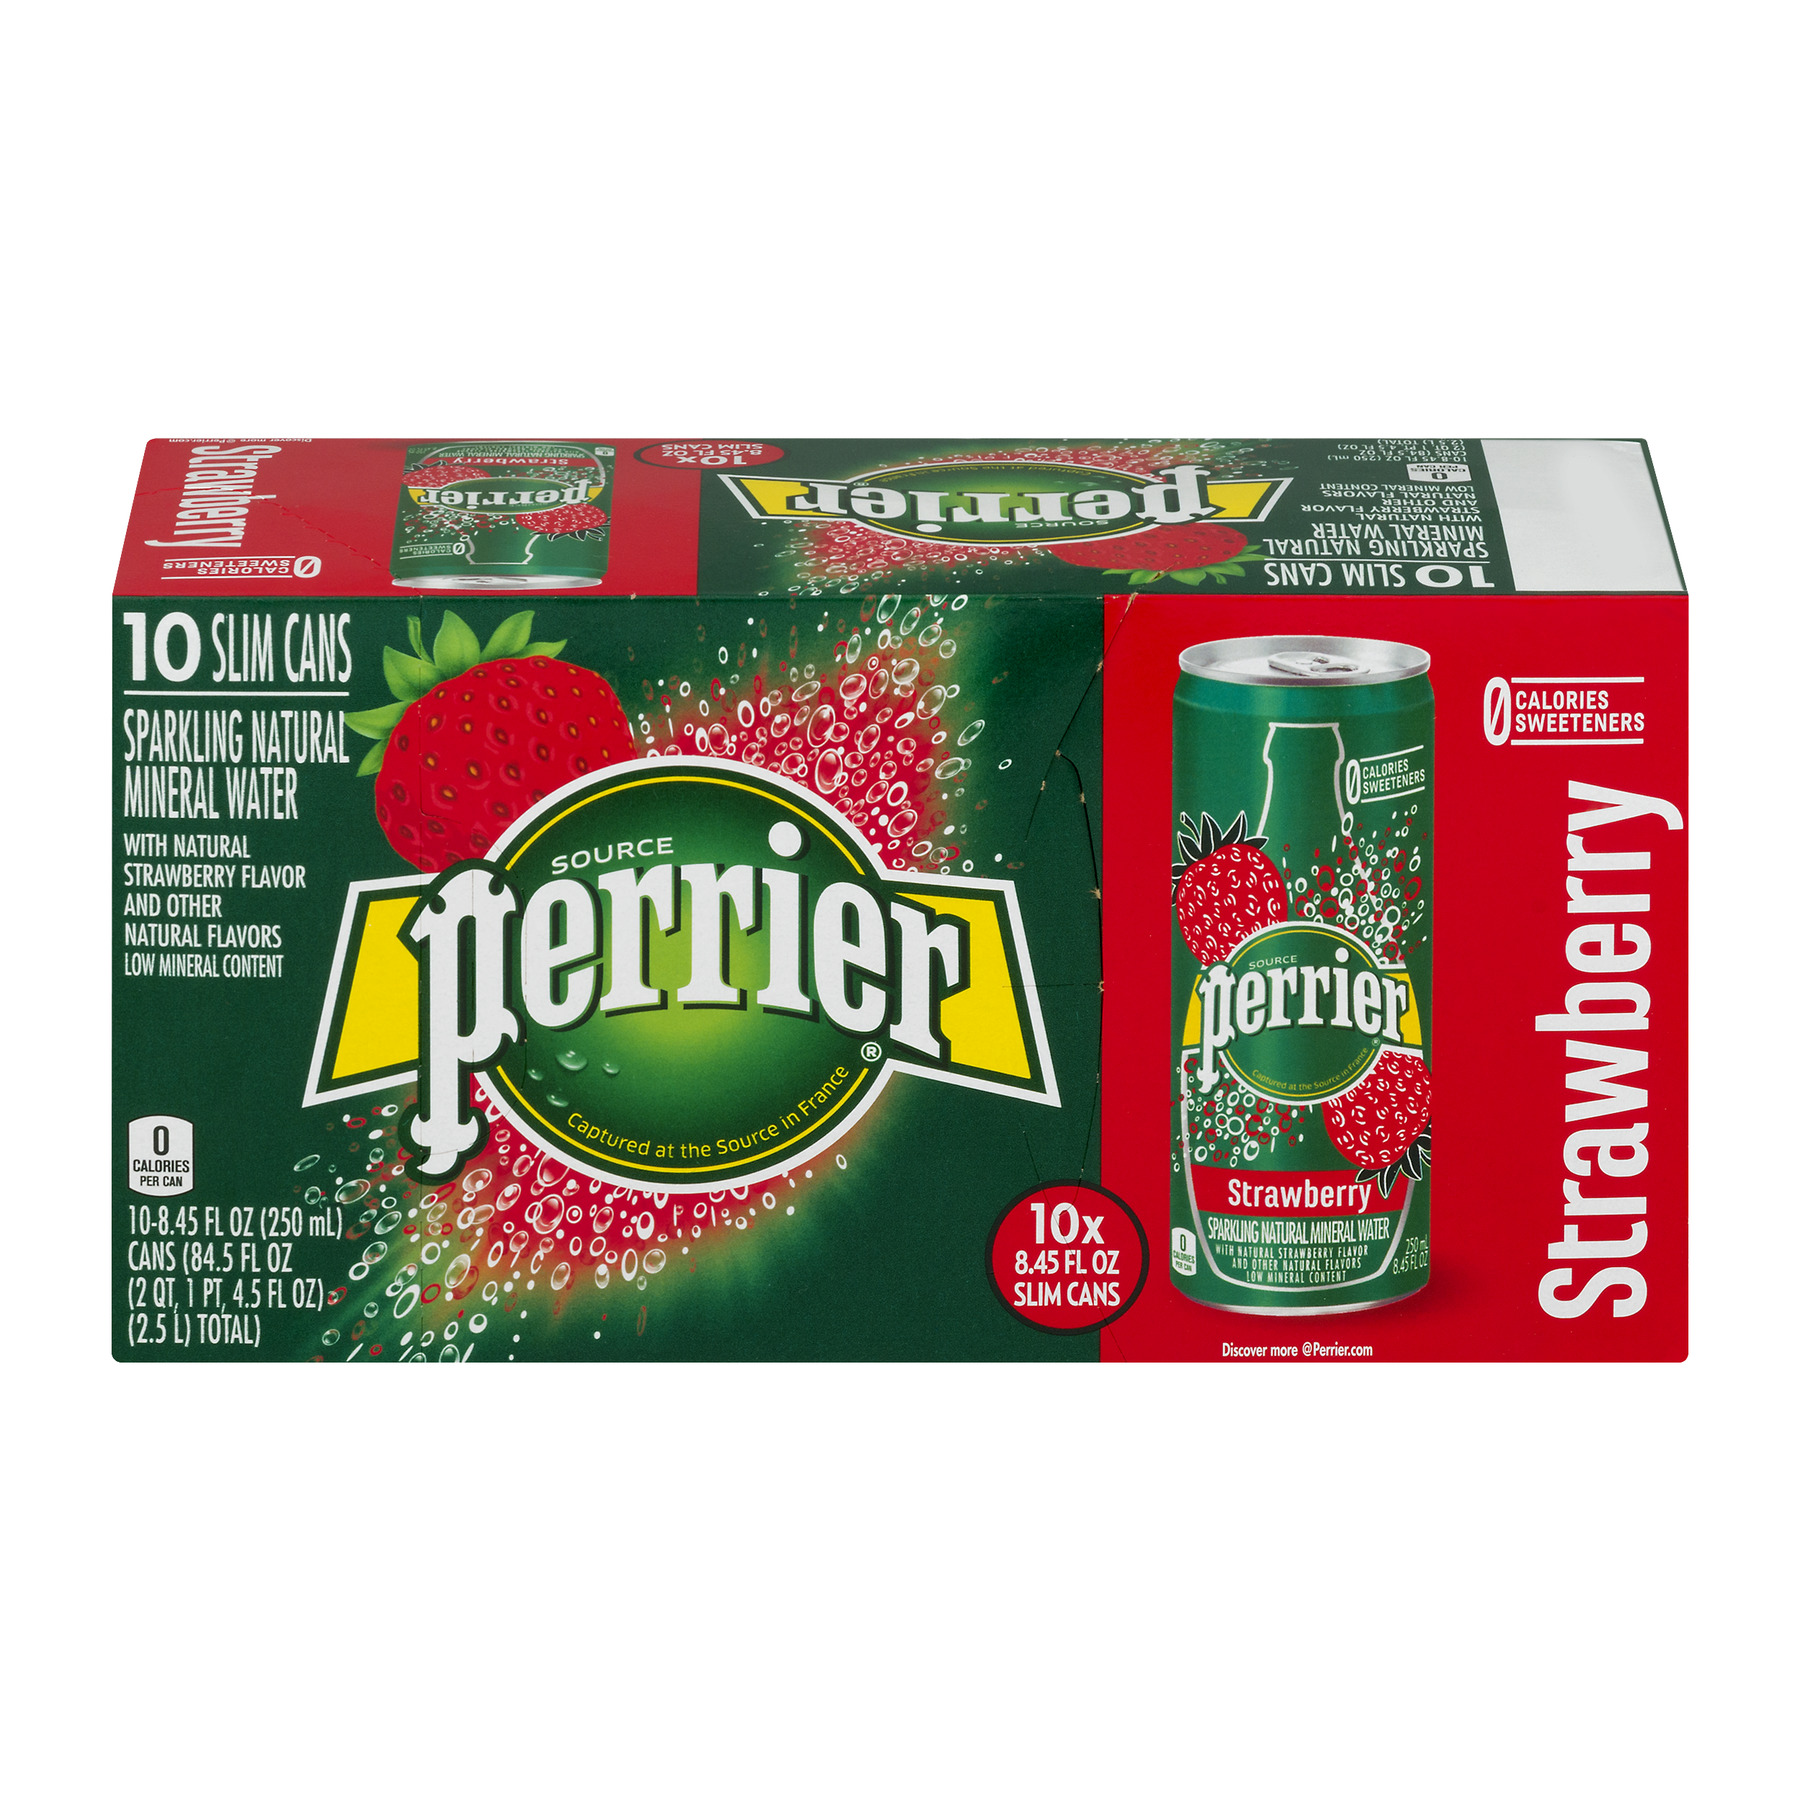 Perrier Sparkling Natural Mineral Water, Strawberry, 8.4 Fl Oz, 10 Count